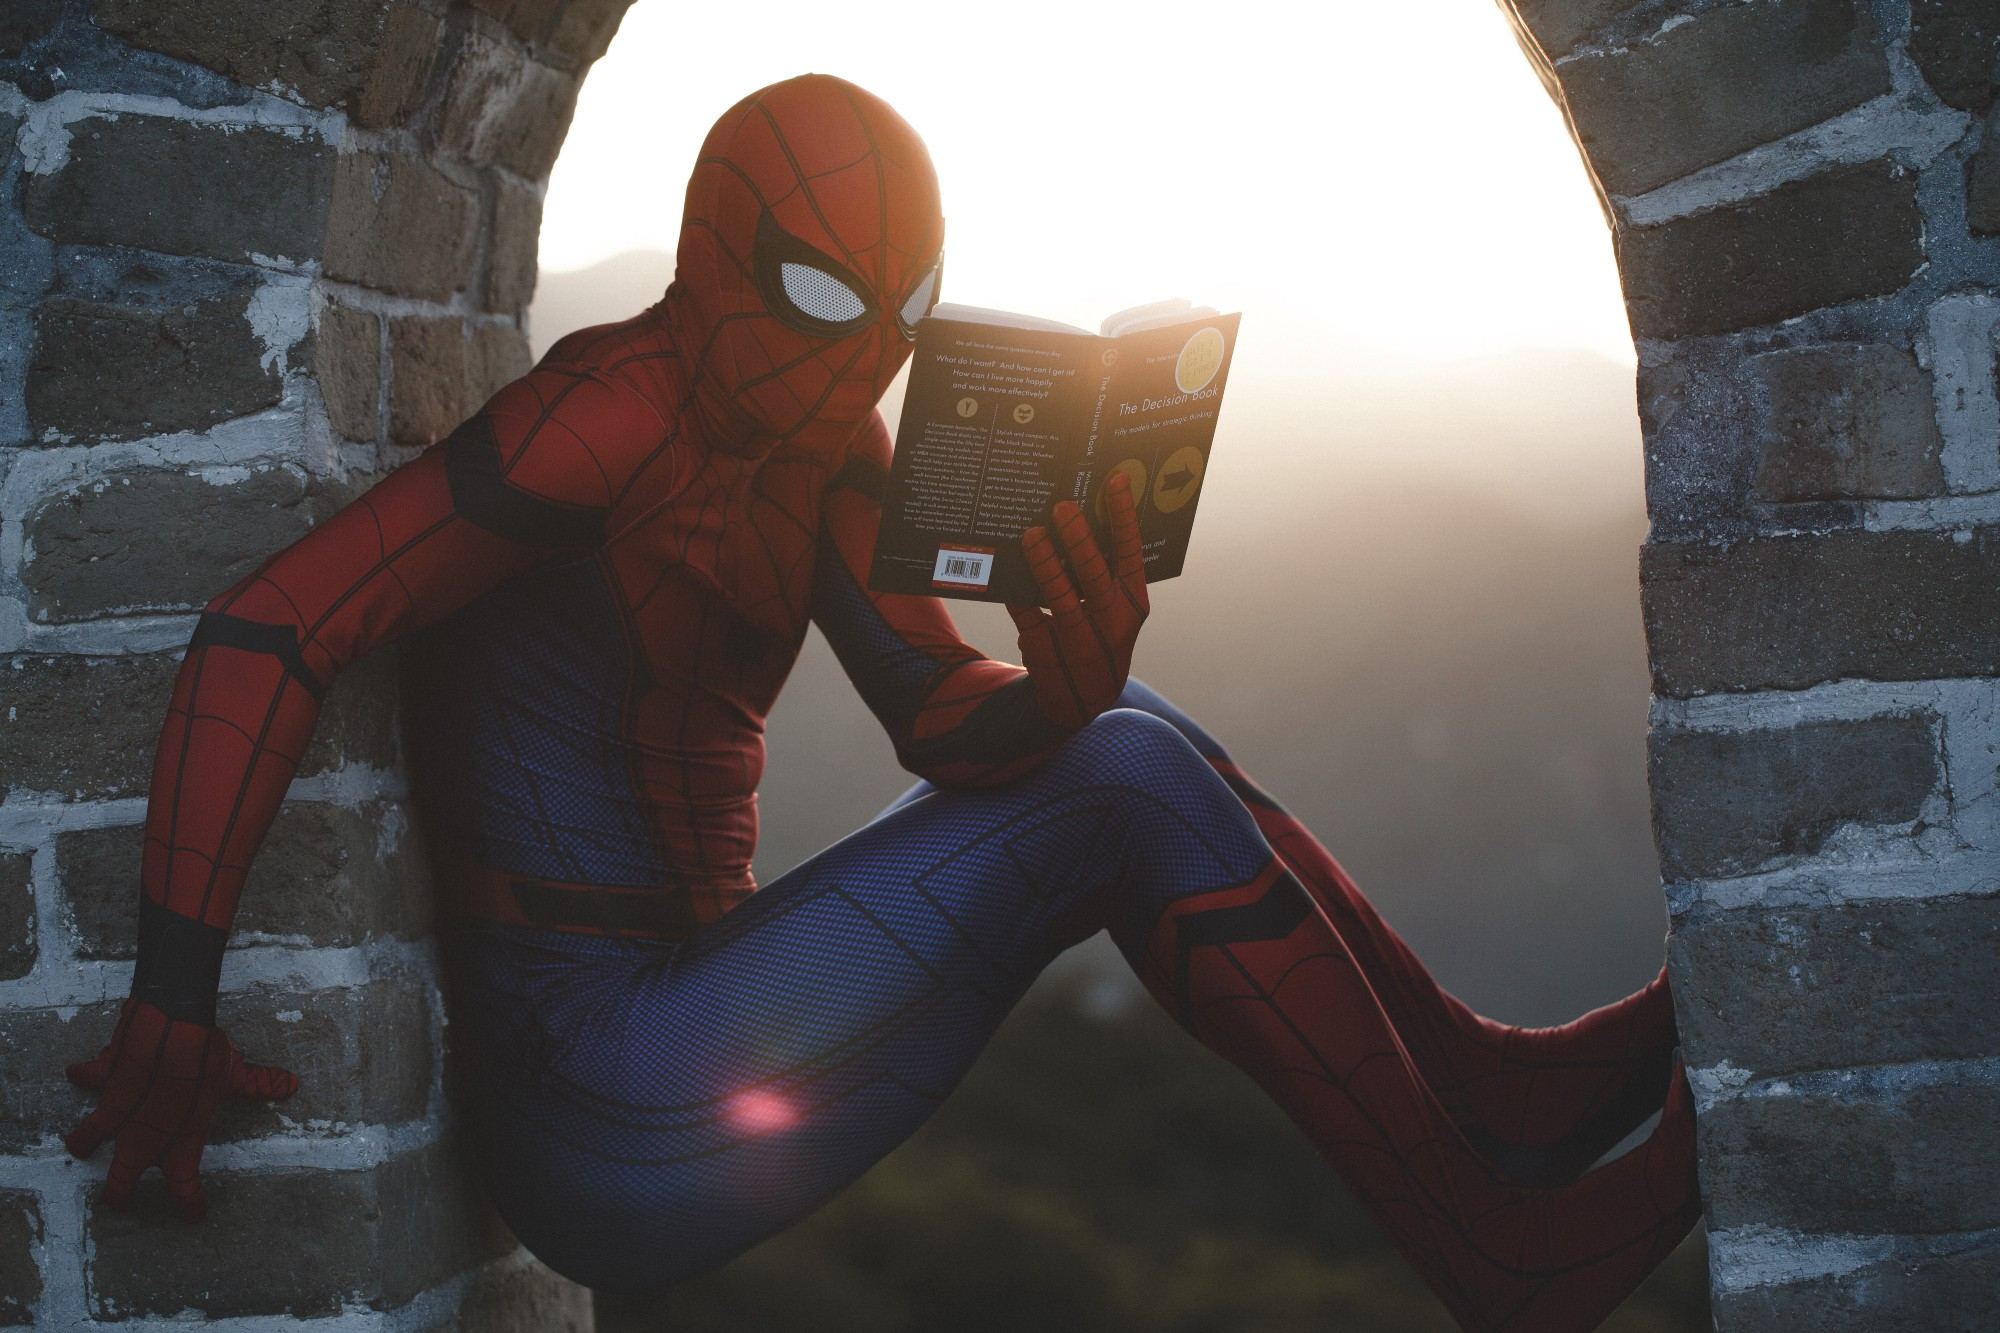 Spiderman reads a book to boost his superpower